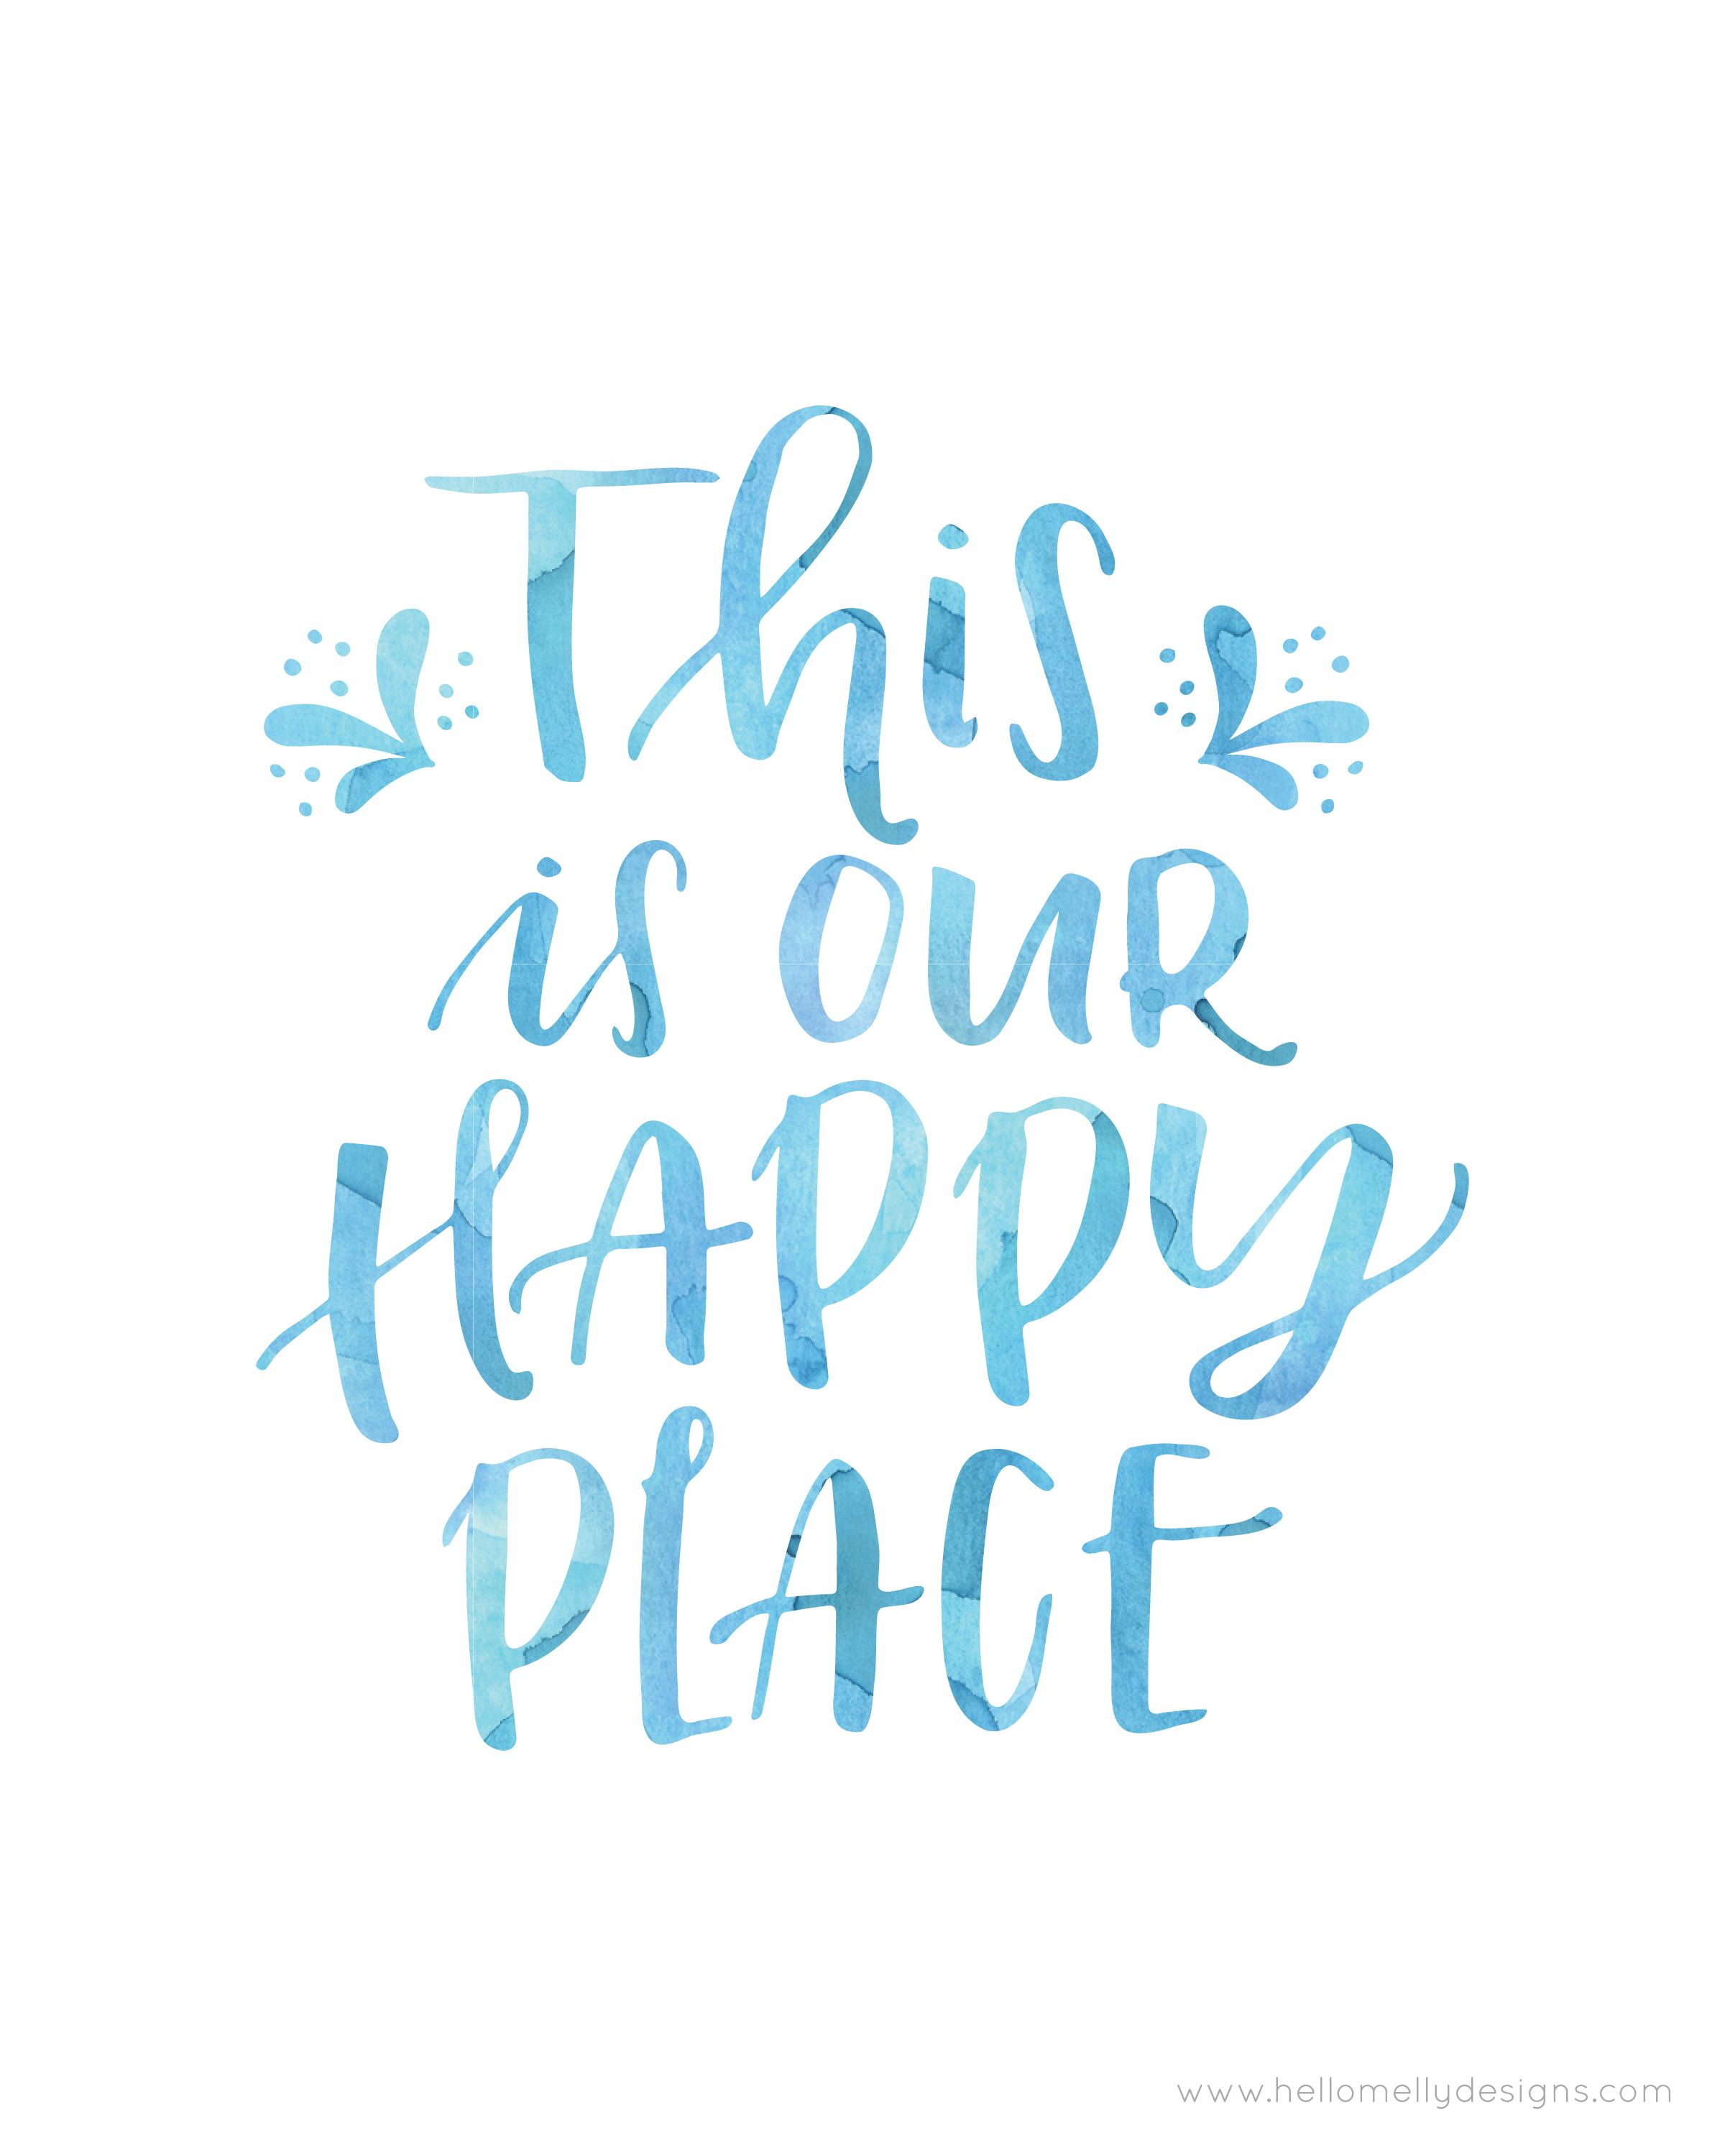 Happy Home Quotes : happy, quotes, Happy, Place, Let's, Kritsyn, Merkley, Quotes,, Quotes